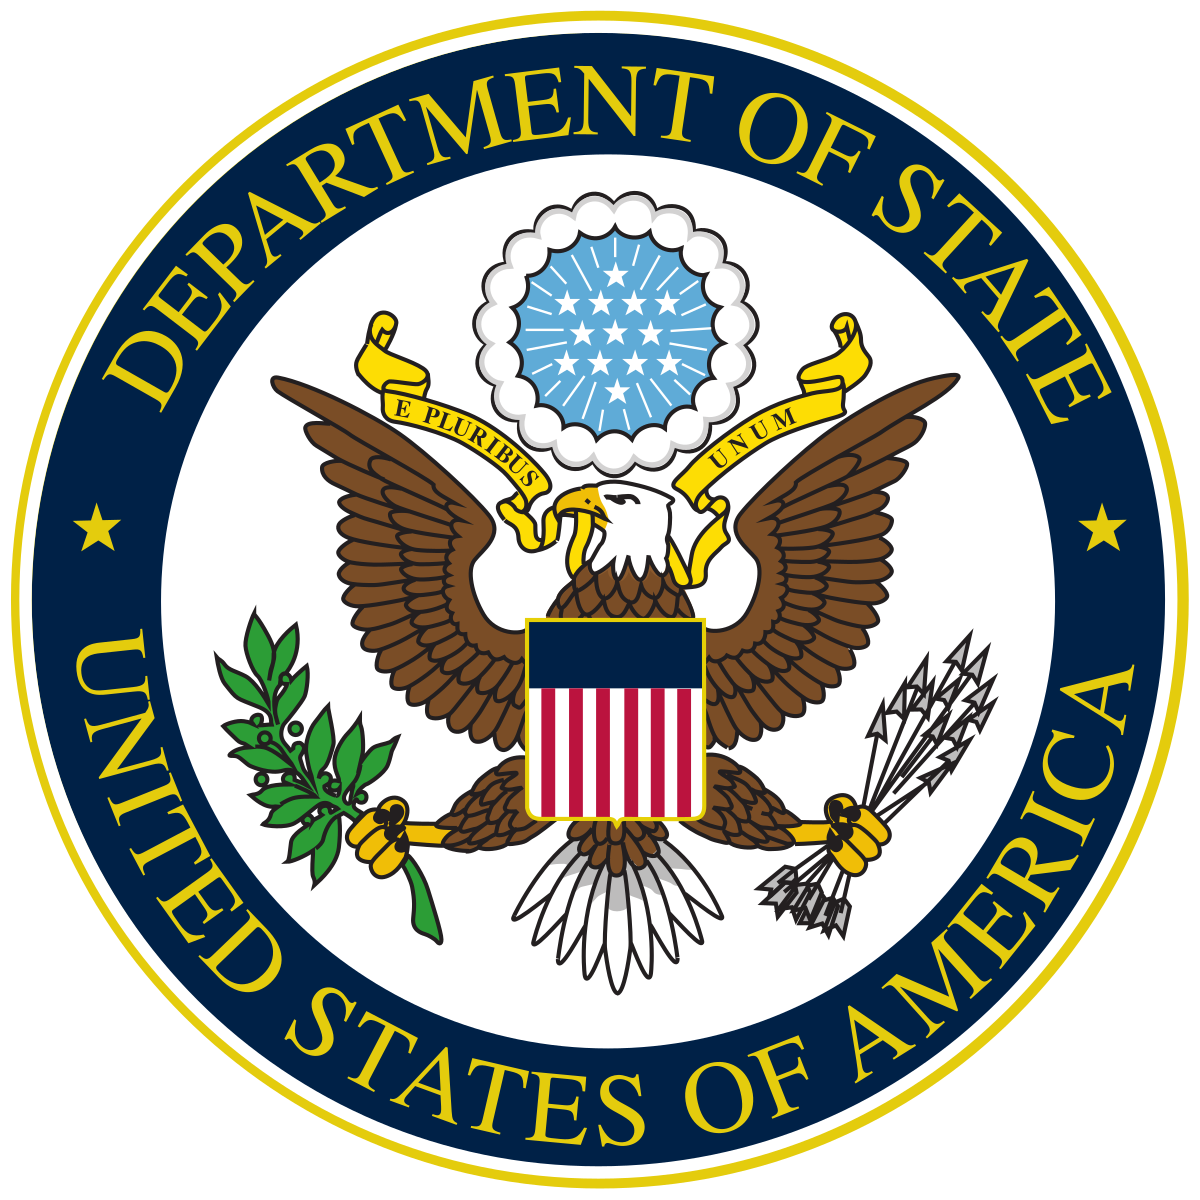 Image source:  U.S. Department of State